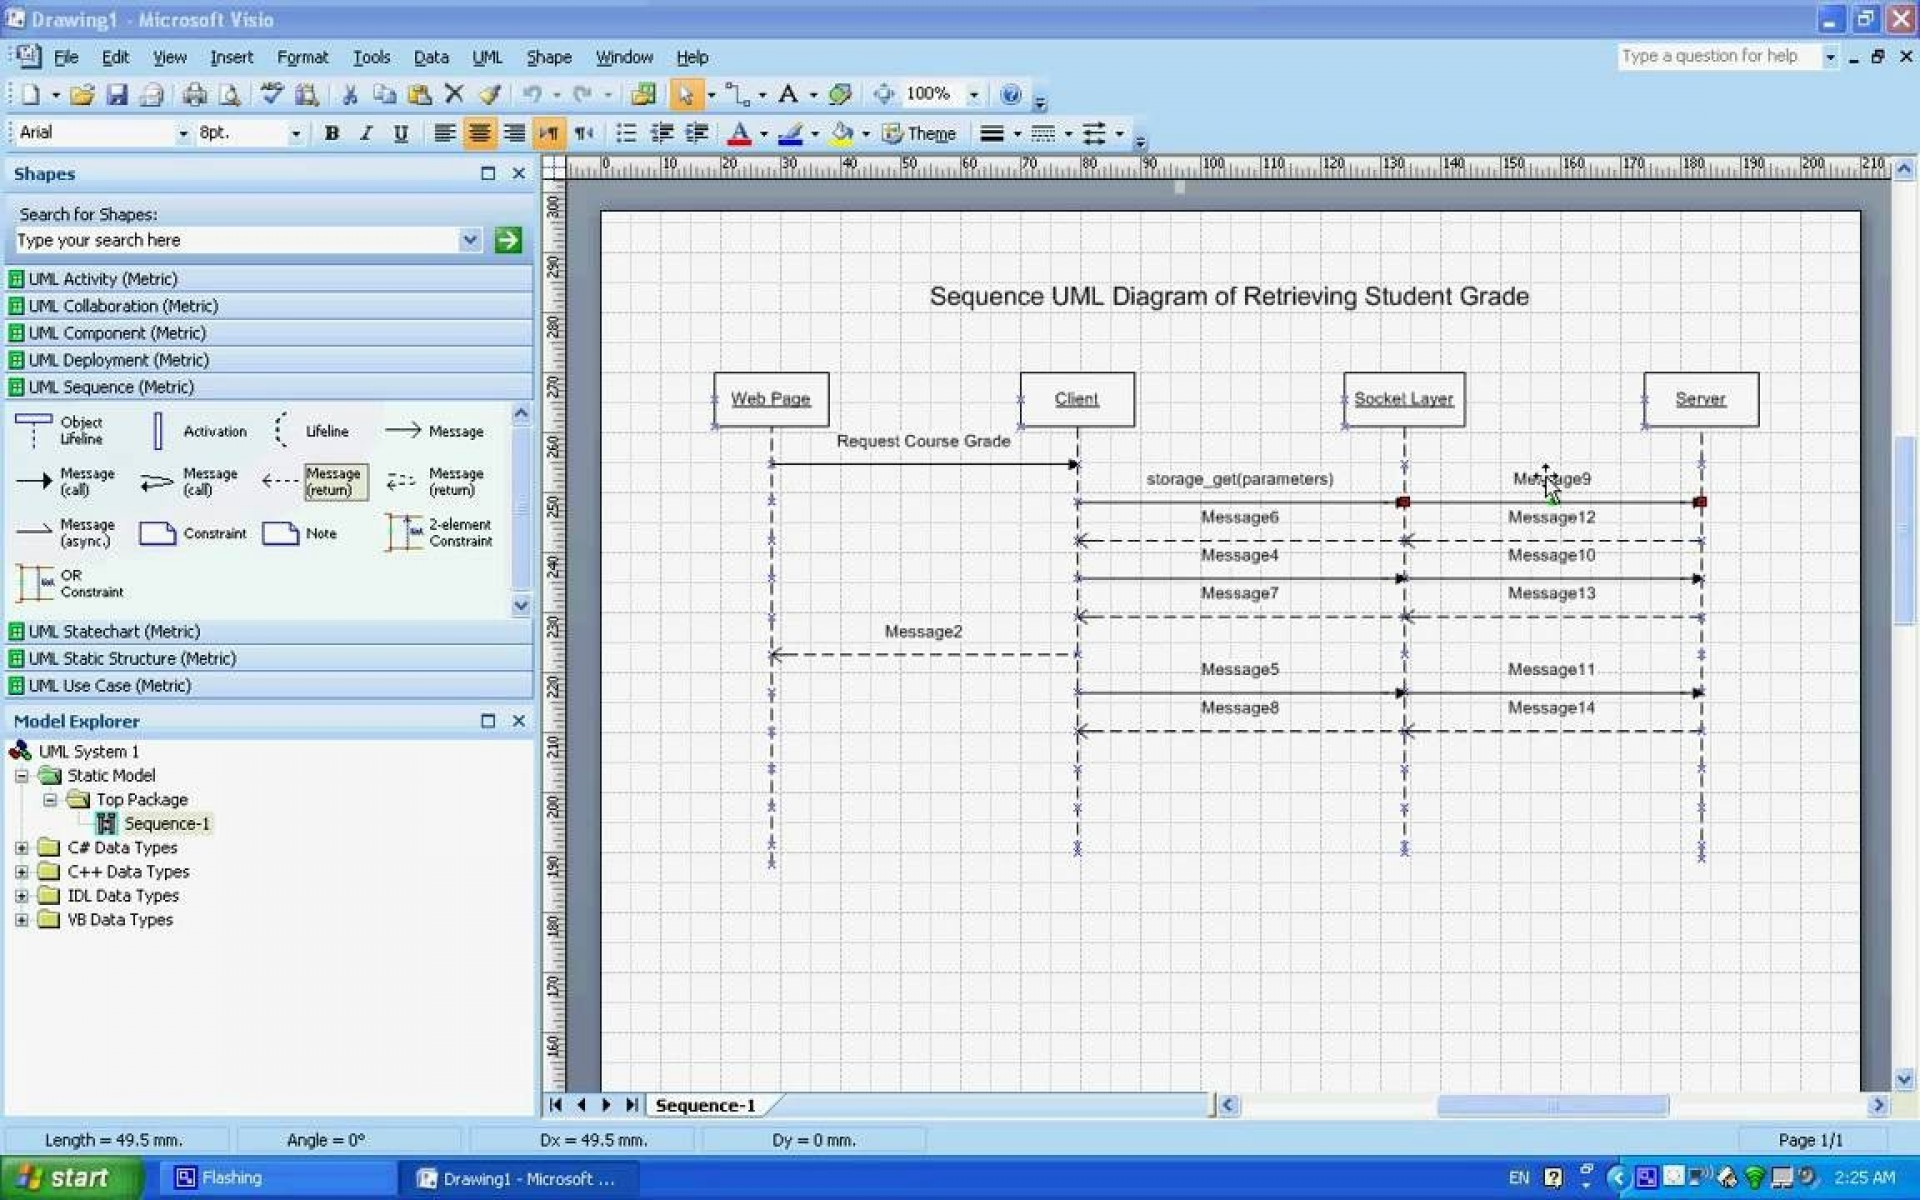 002 Archaicawful Use Case Diagram Template Visio 2010 Photo  Uml Model Download Clas1920